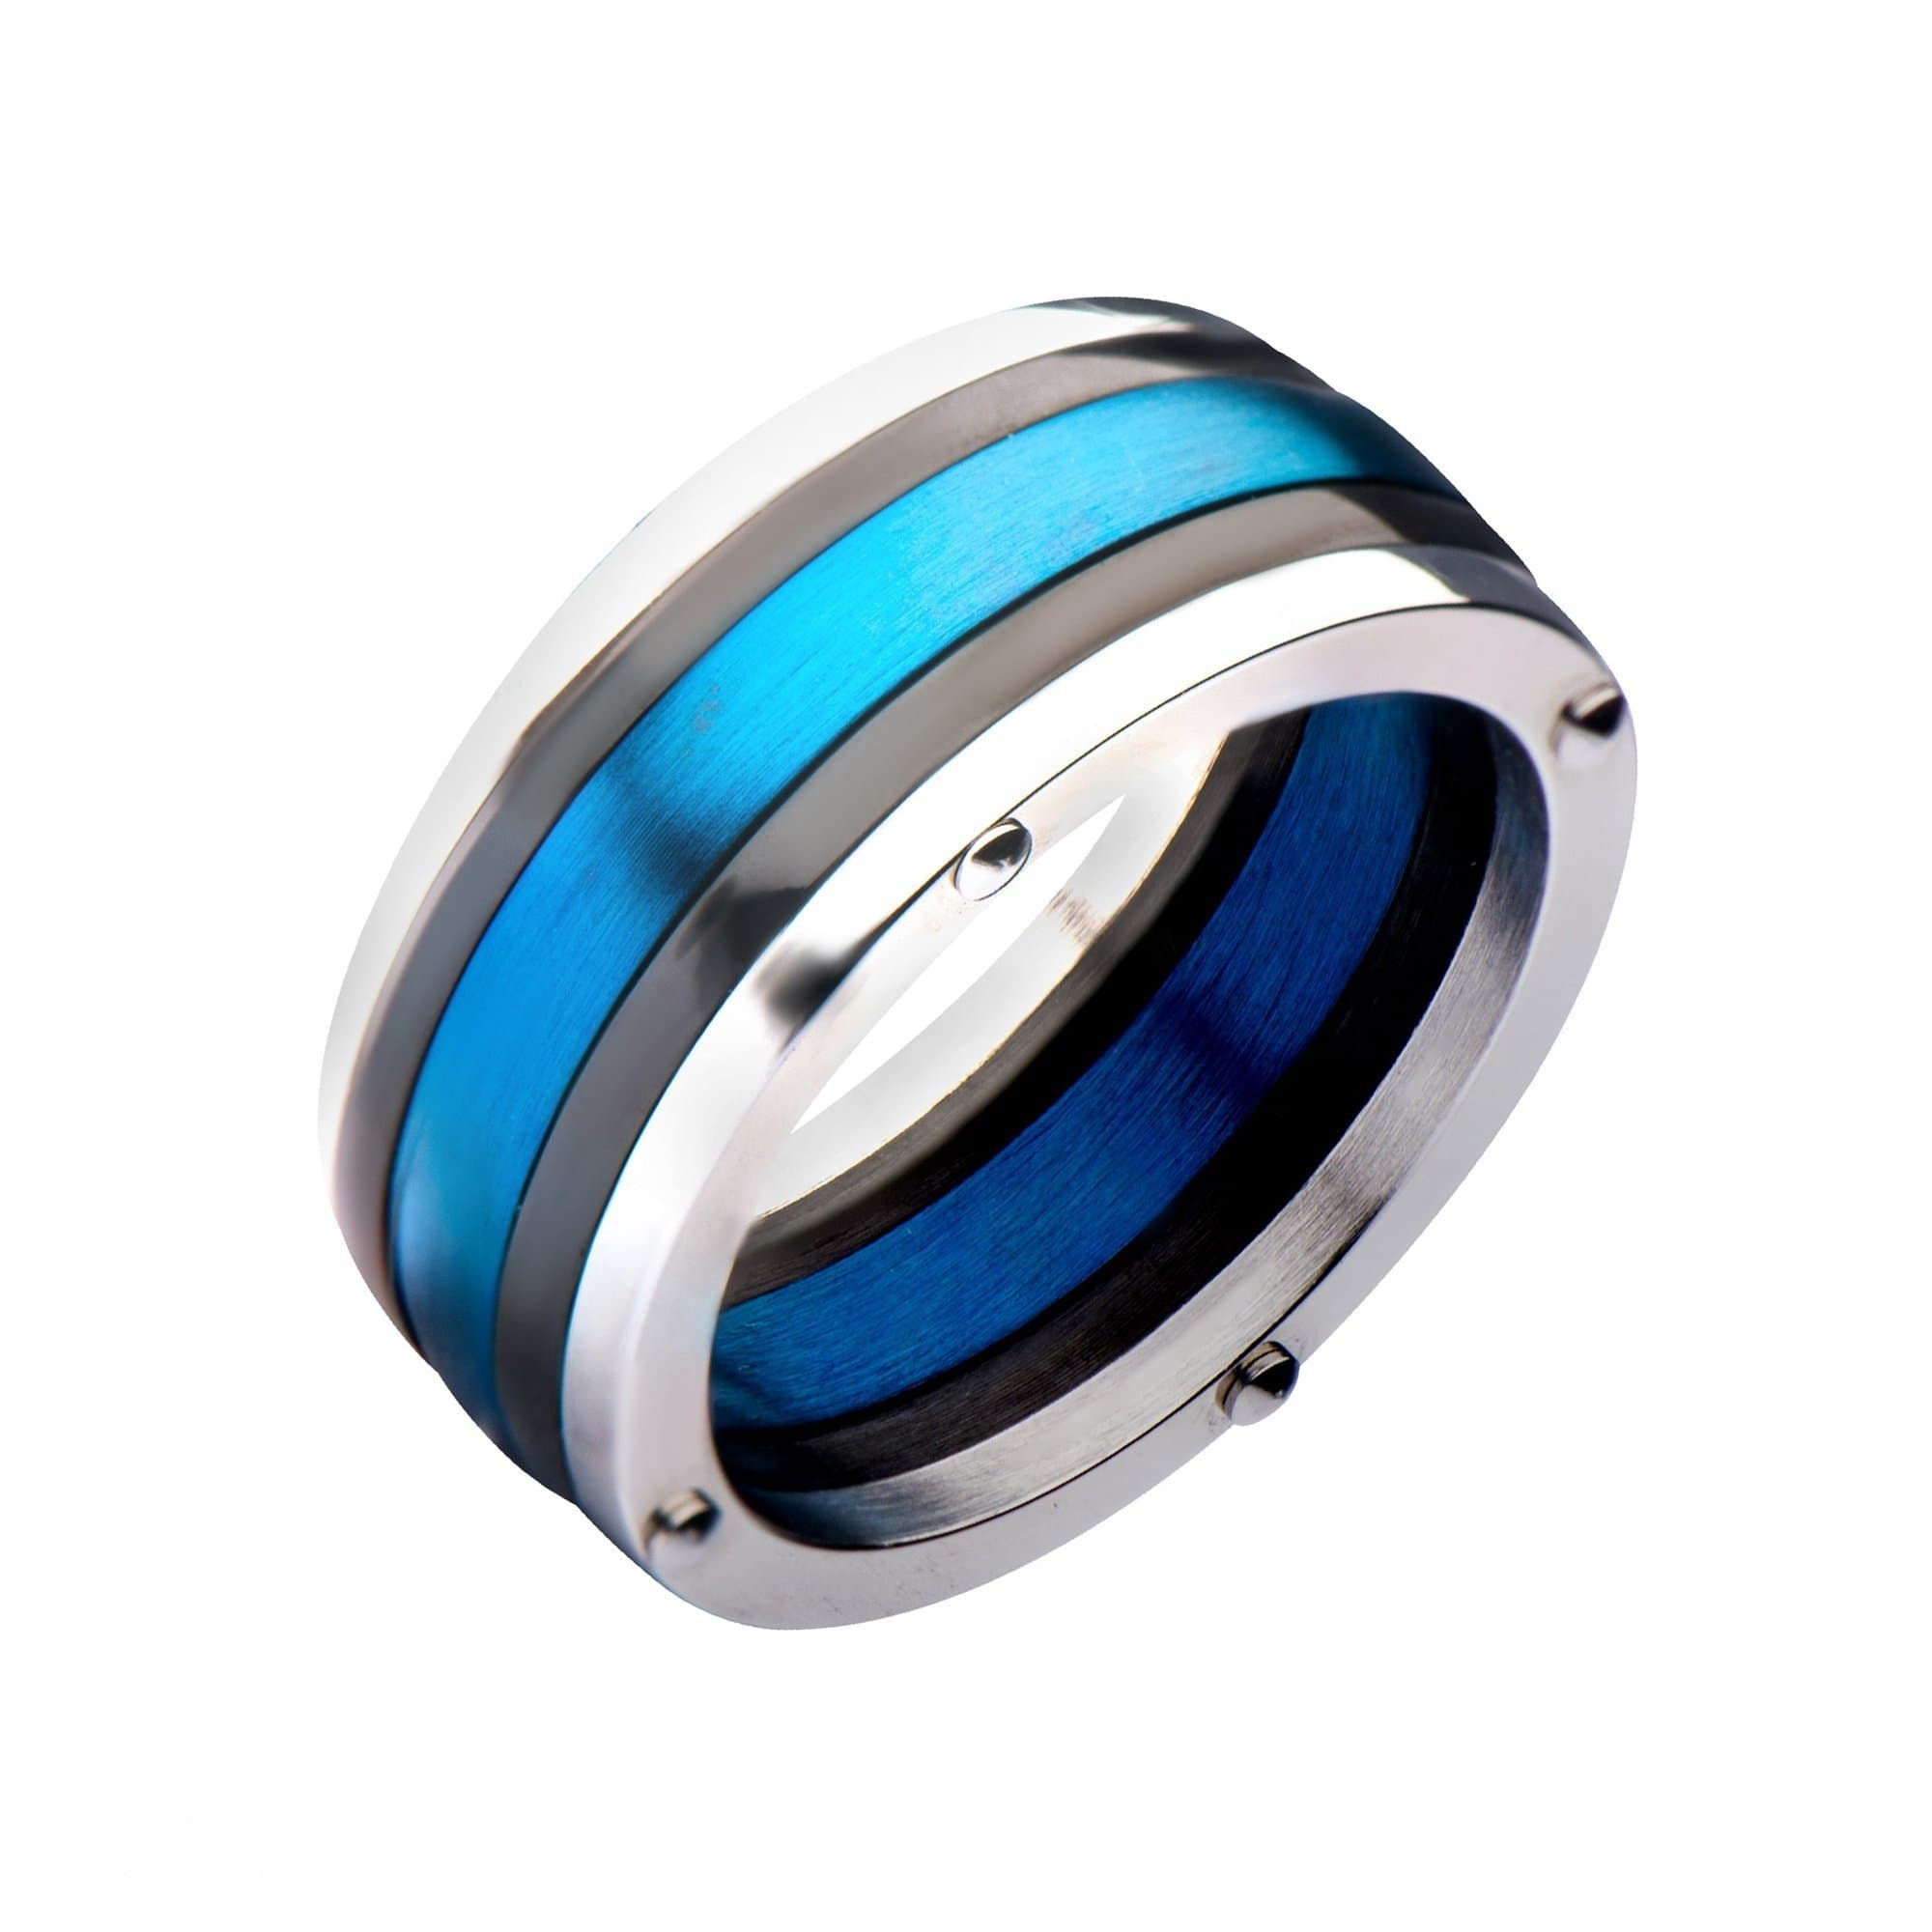 Silver, Blue & Black Stainless Steel Triple Lined Contemporary Band Ring